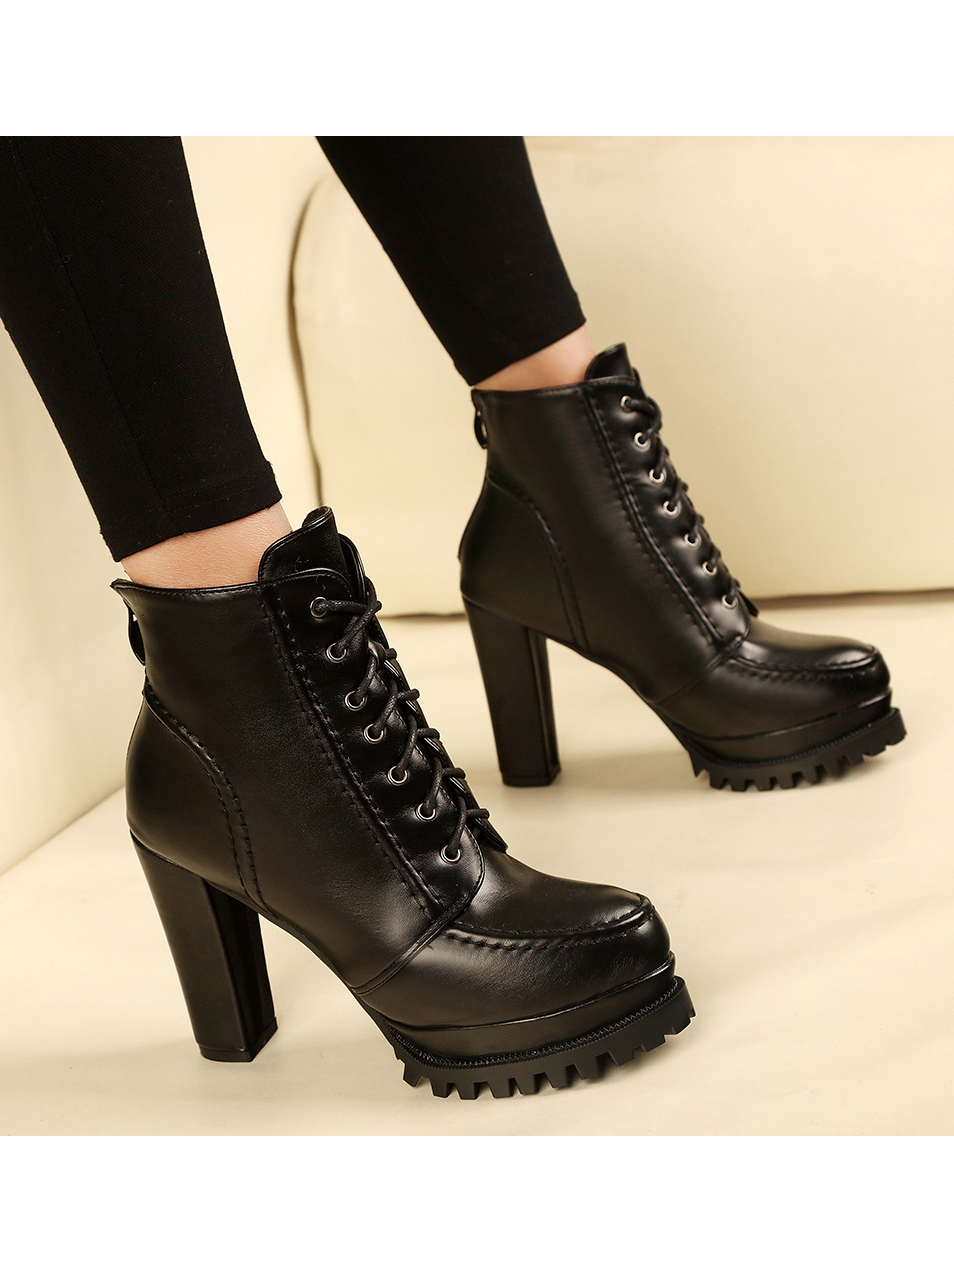 Fashion Platform Chunky Ankle Martin Boots For Women